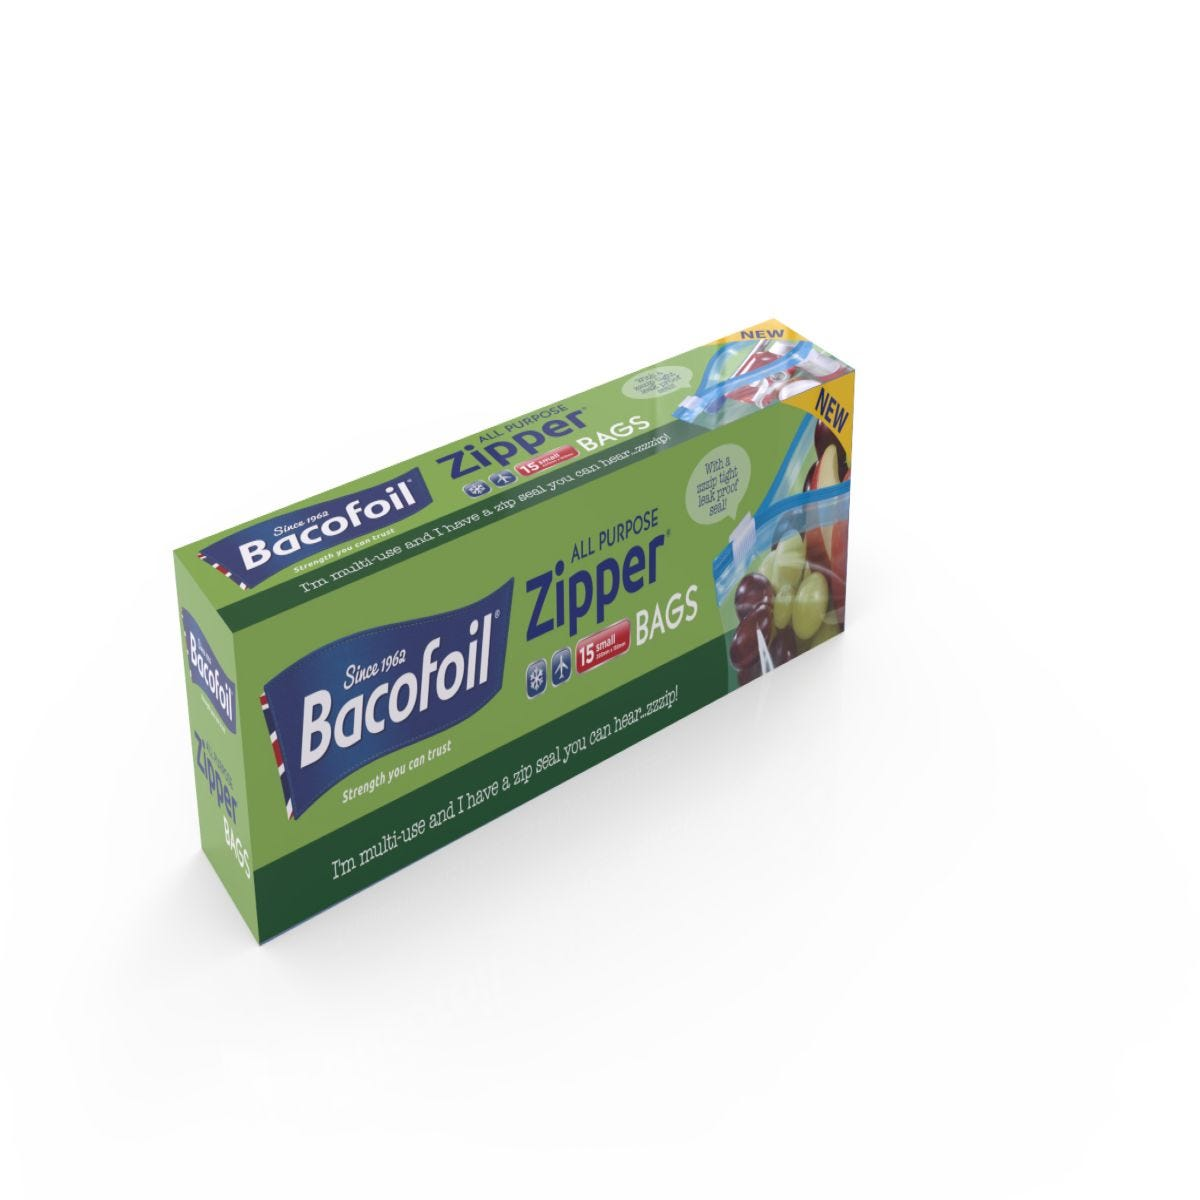 Bacofoil Small Zipper Bags - 15 Pack